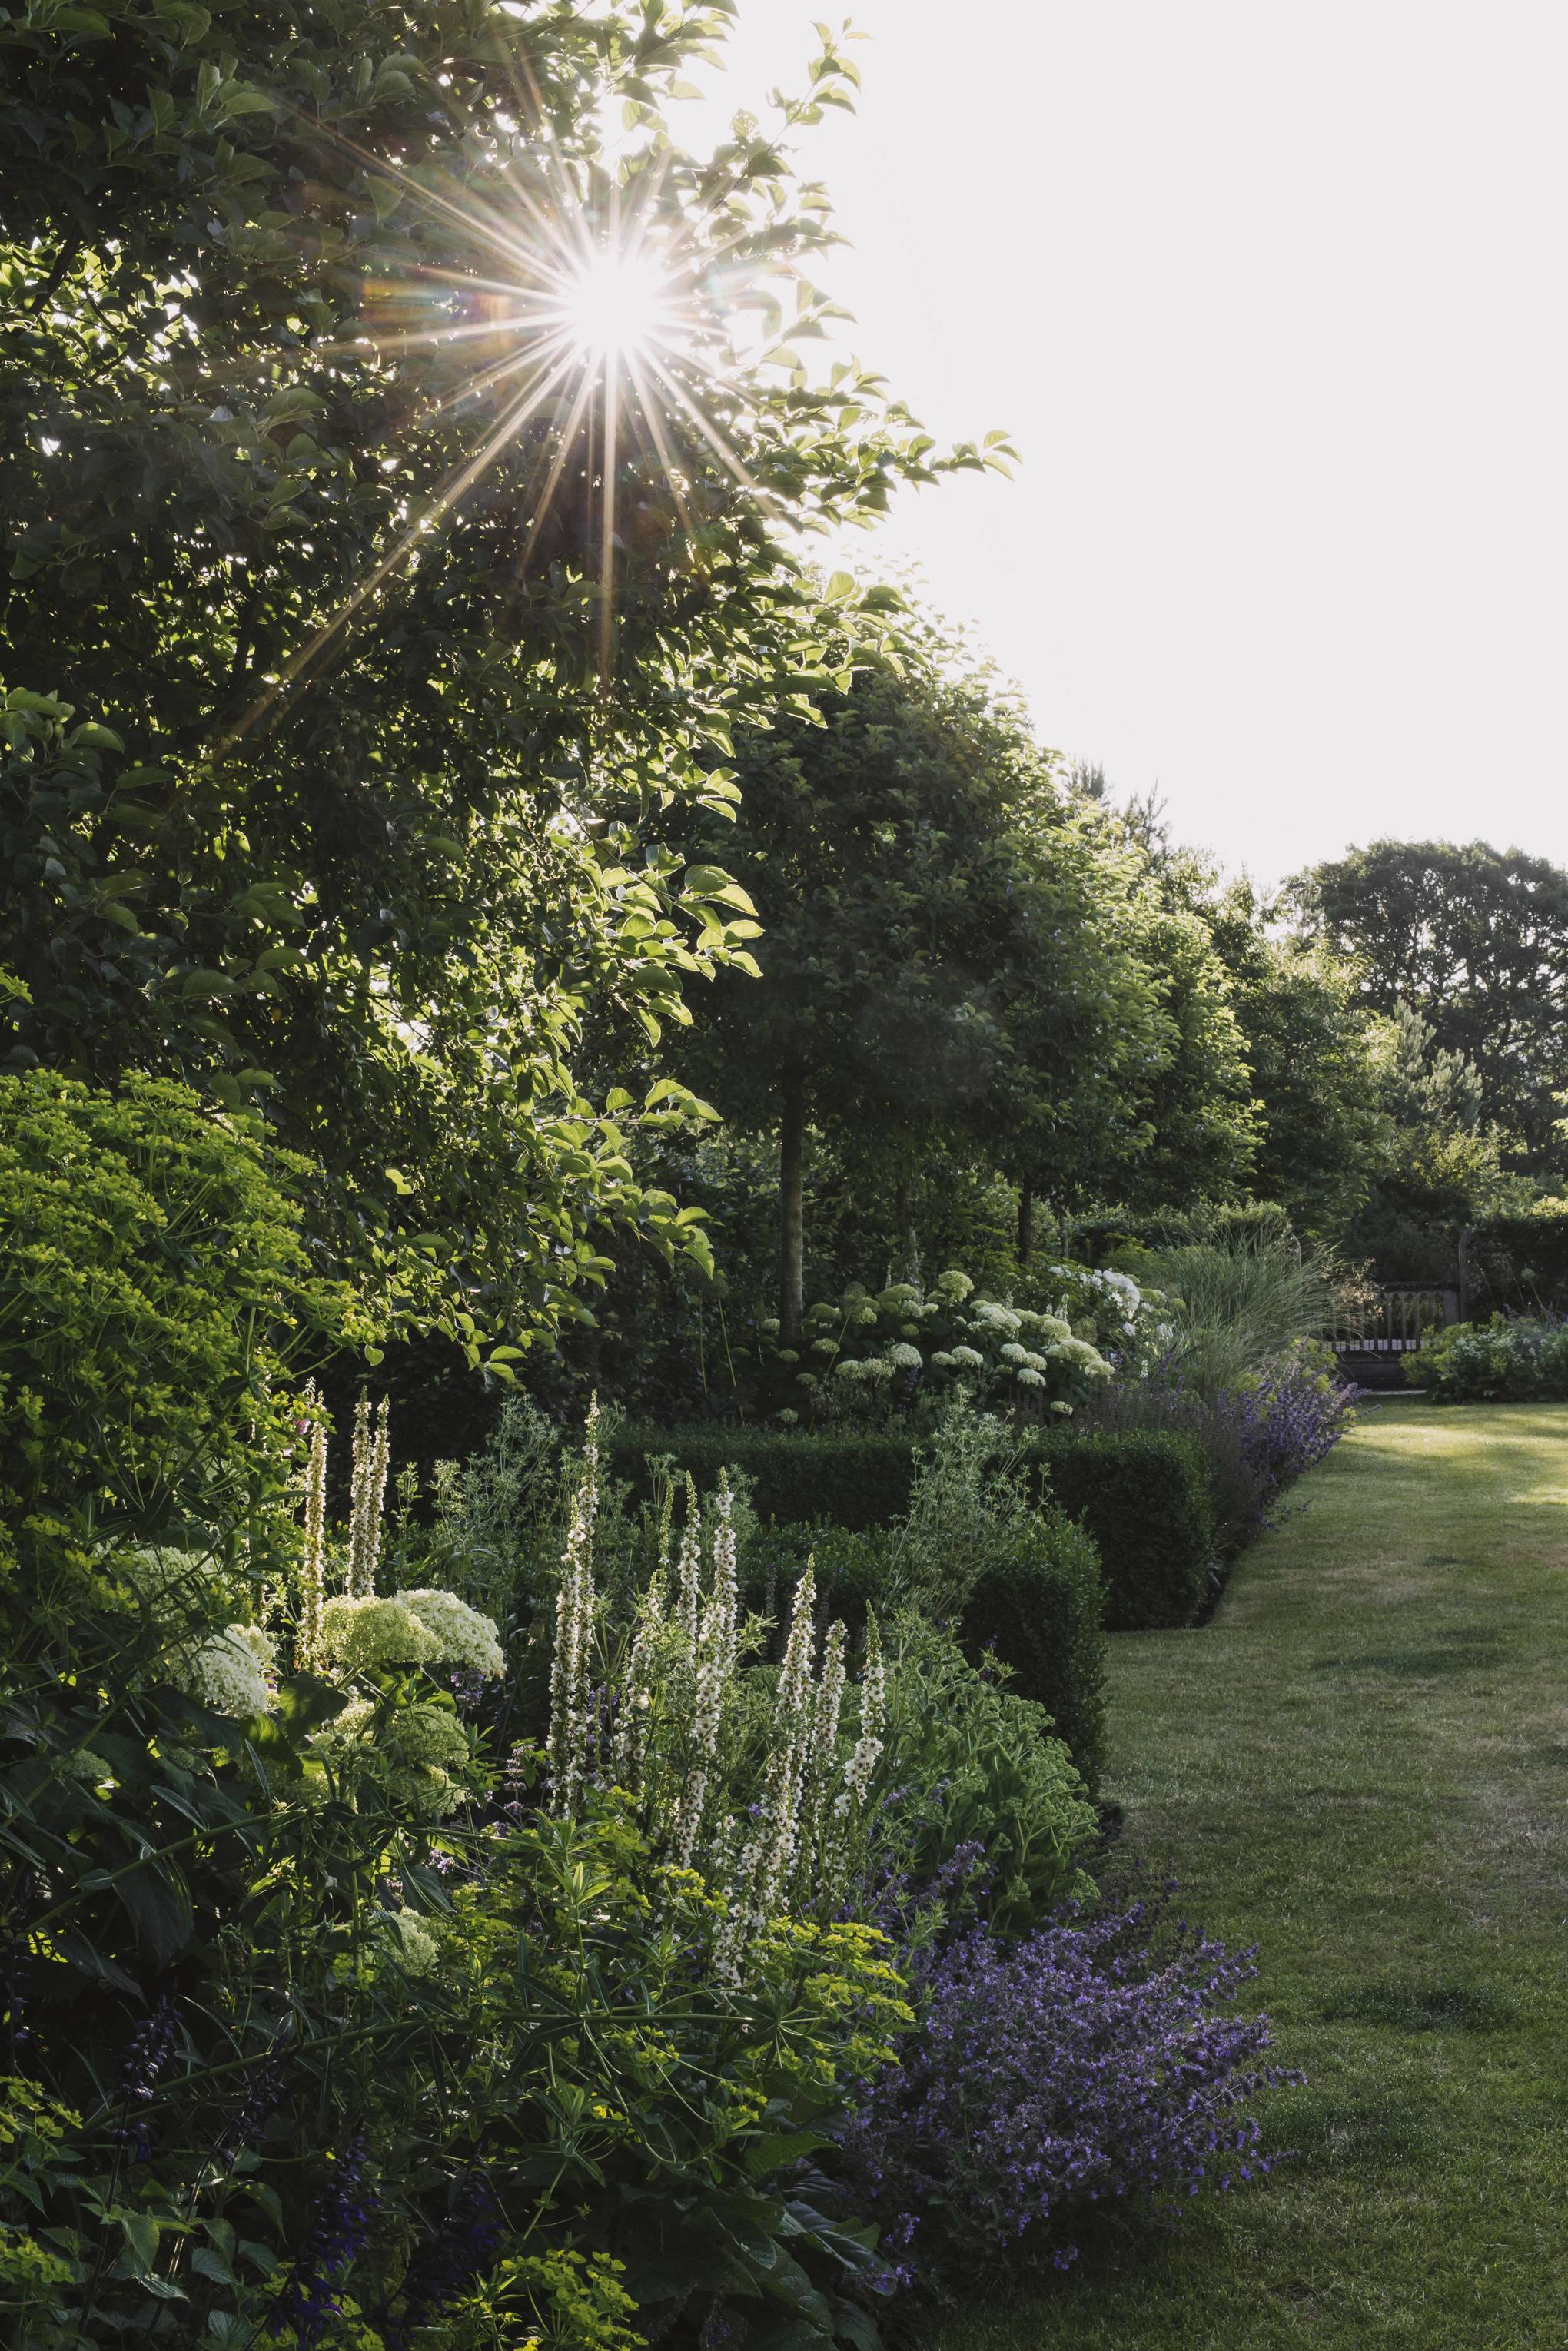 Restoring beauty and order to the 24-acre garden of North Rode Manor